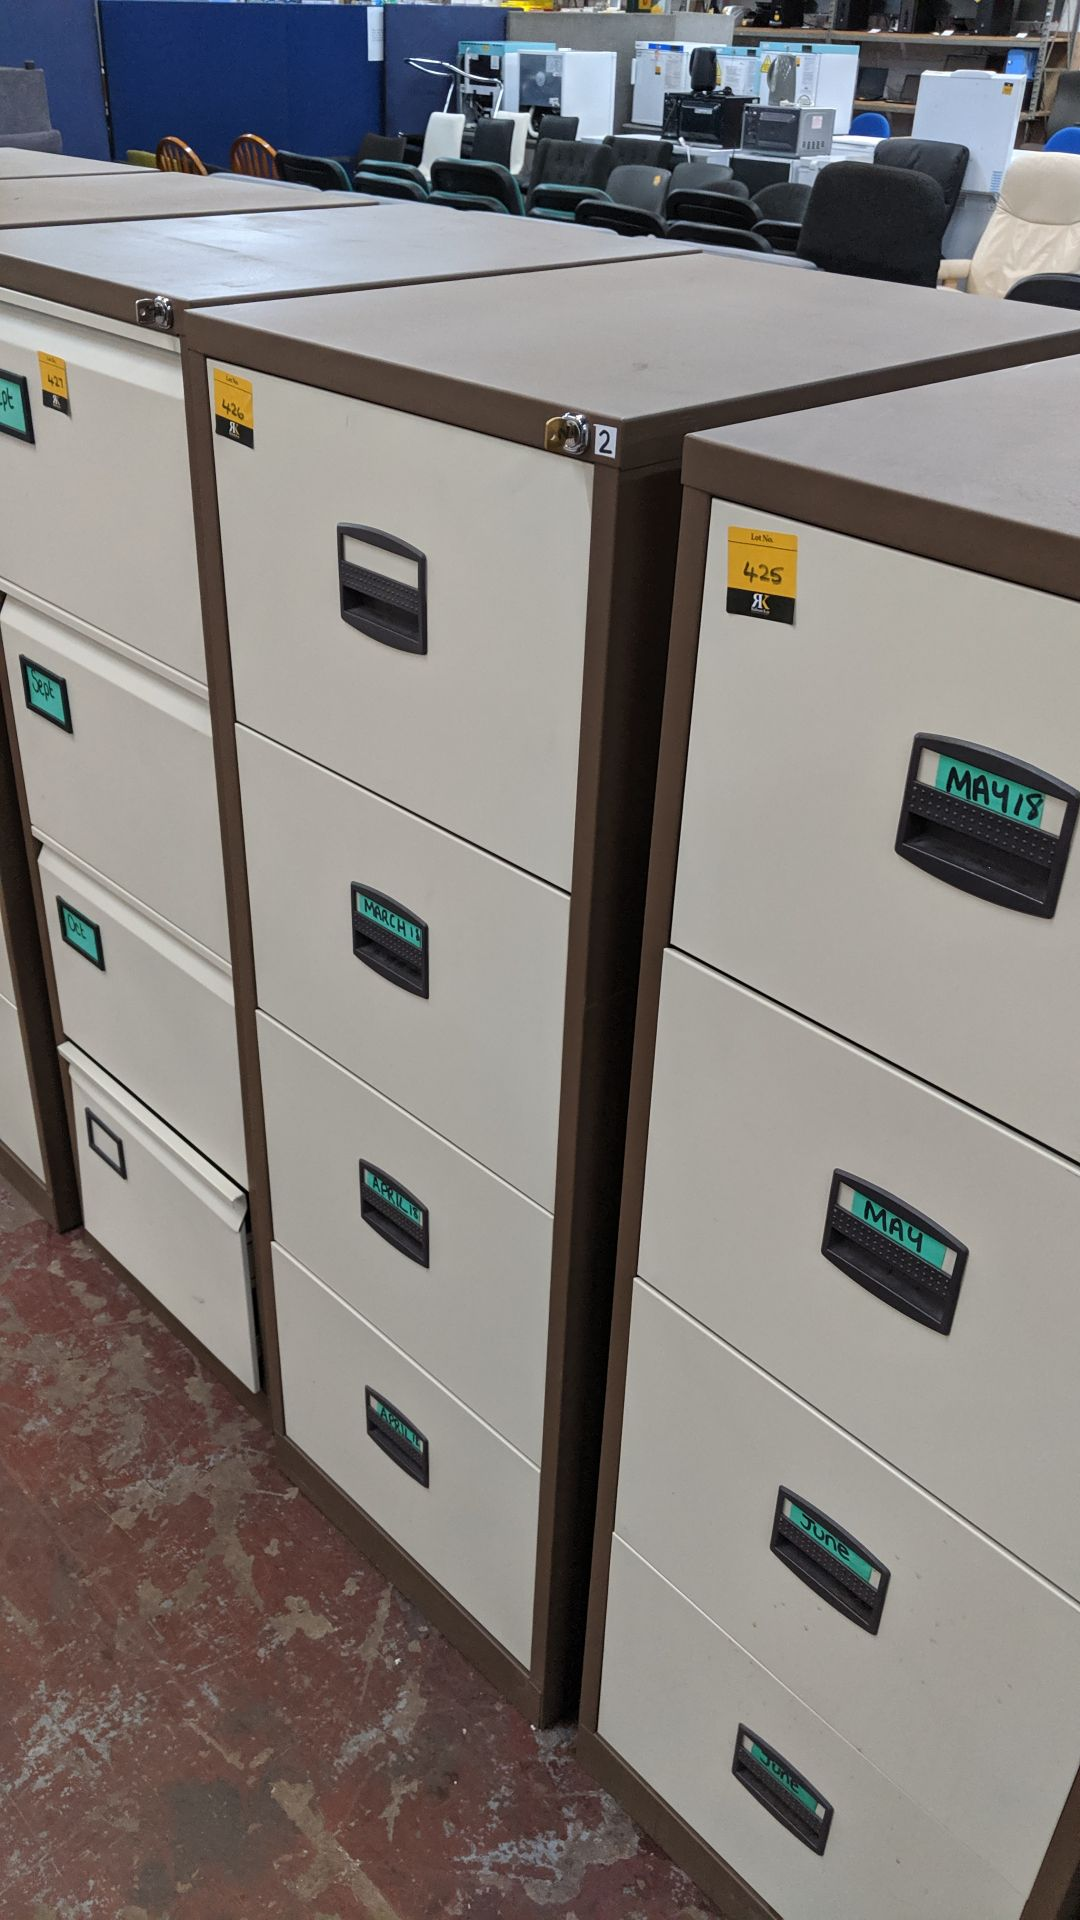 Lot 426 - Brown metal 4-drawer filing cabinet with key. This is one of a large number of lots used/owned by